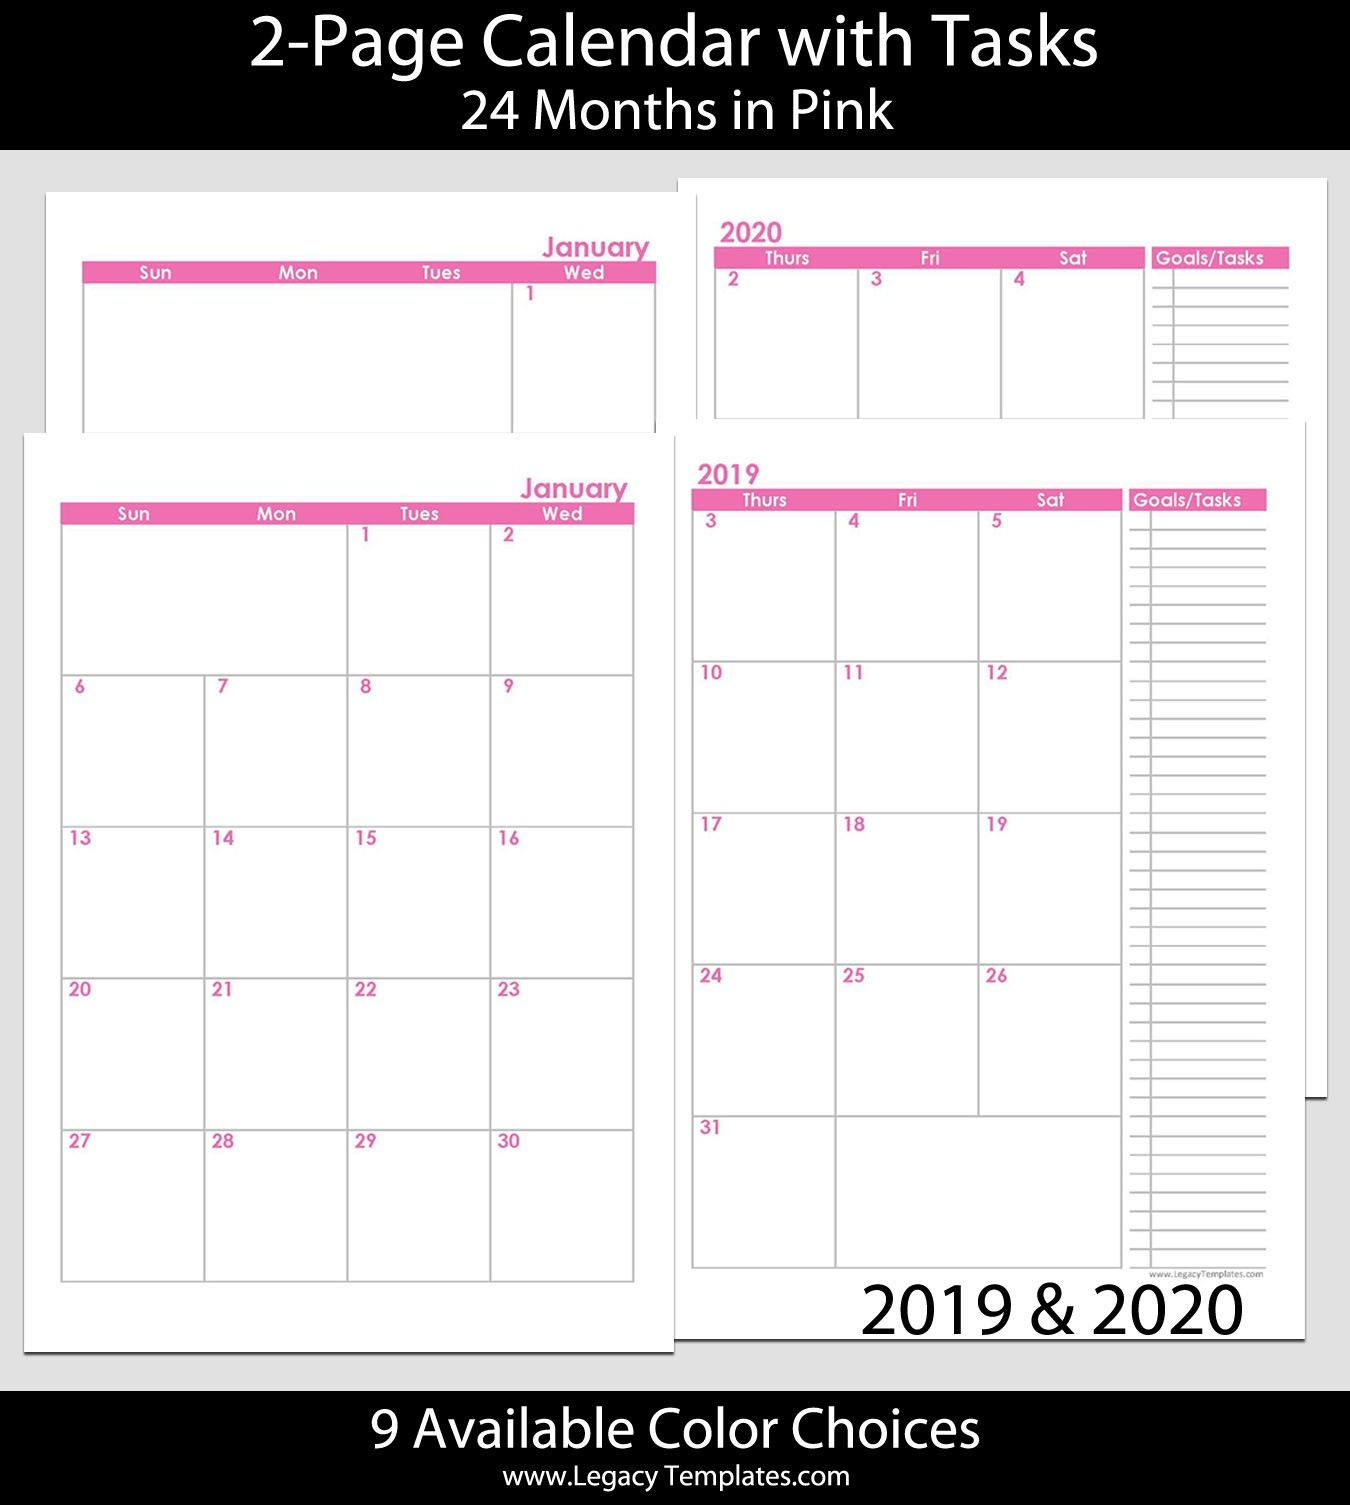 2019 & 2020 24-Months 2-Page Calendar – A5 | Legacy Templates-2 Page Monthly Calendar Printable 2020